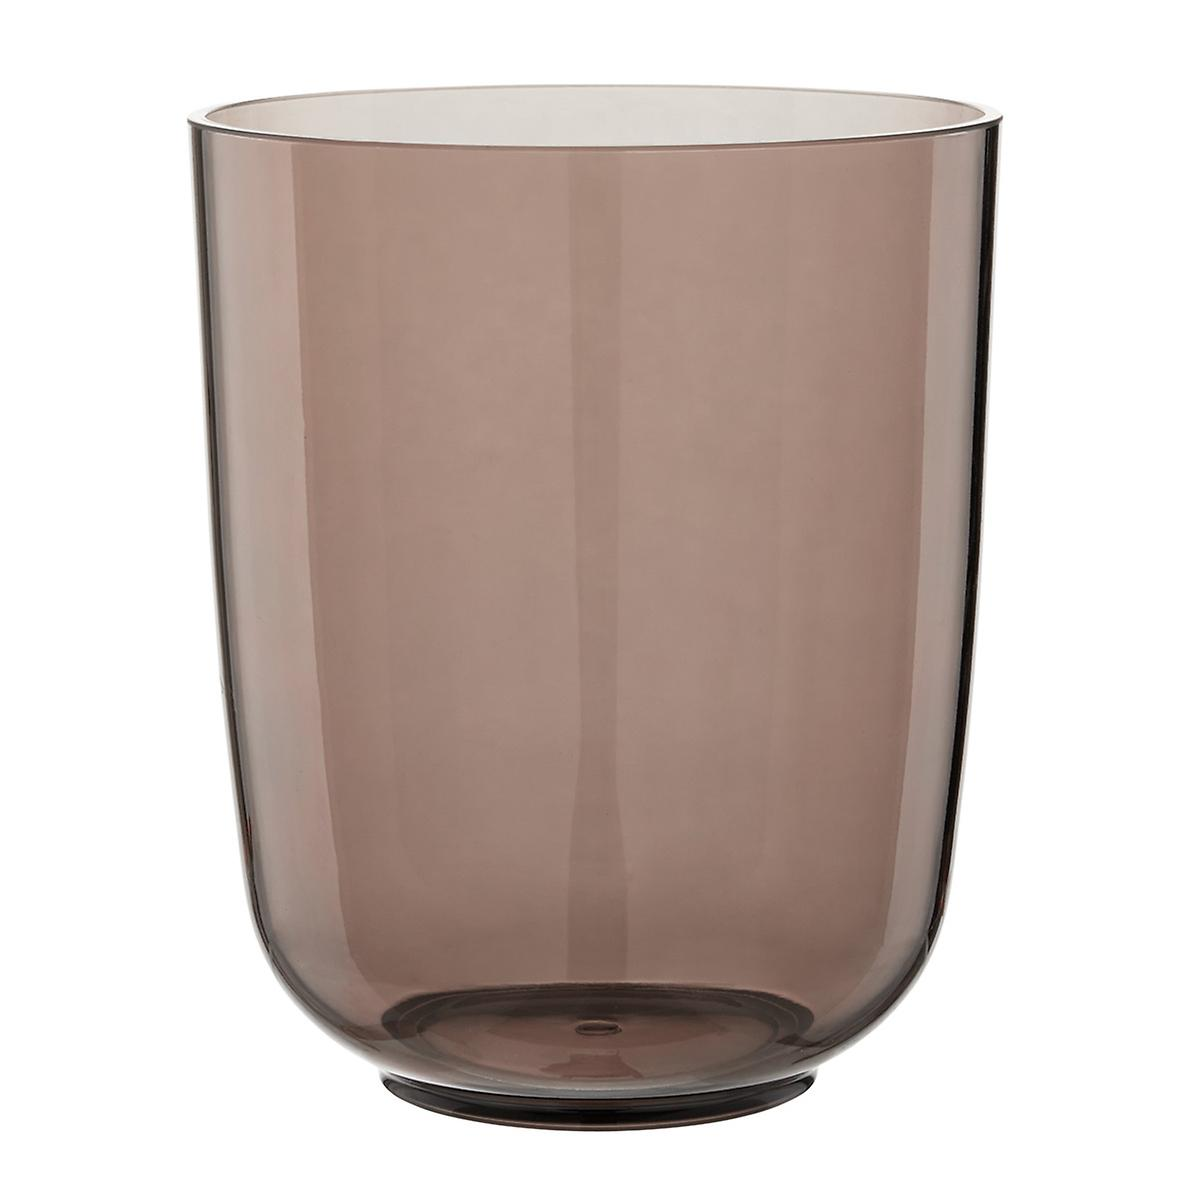 Umbra Droplet Smoke Acrylic Trash Can